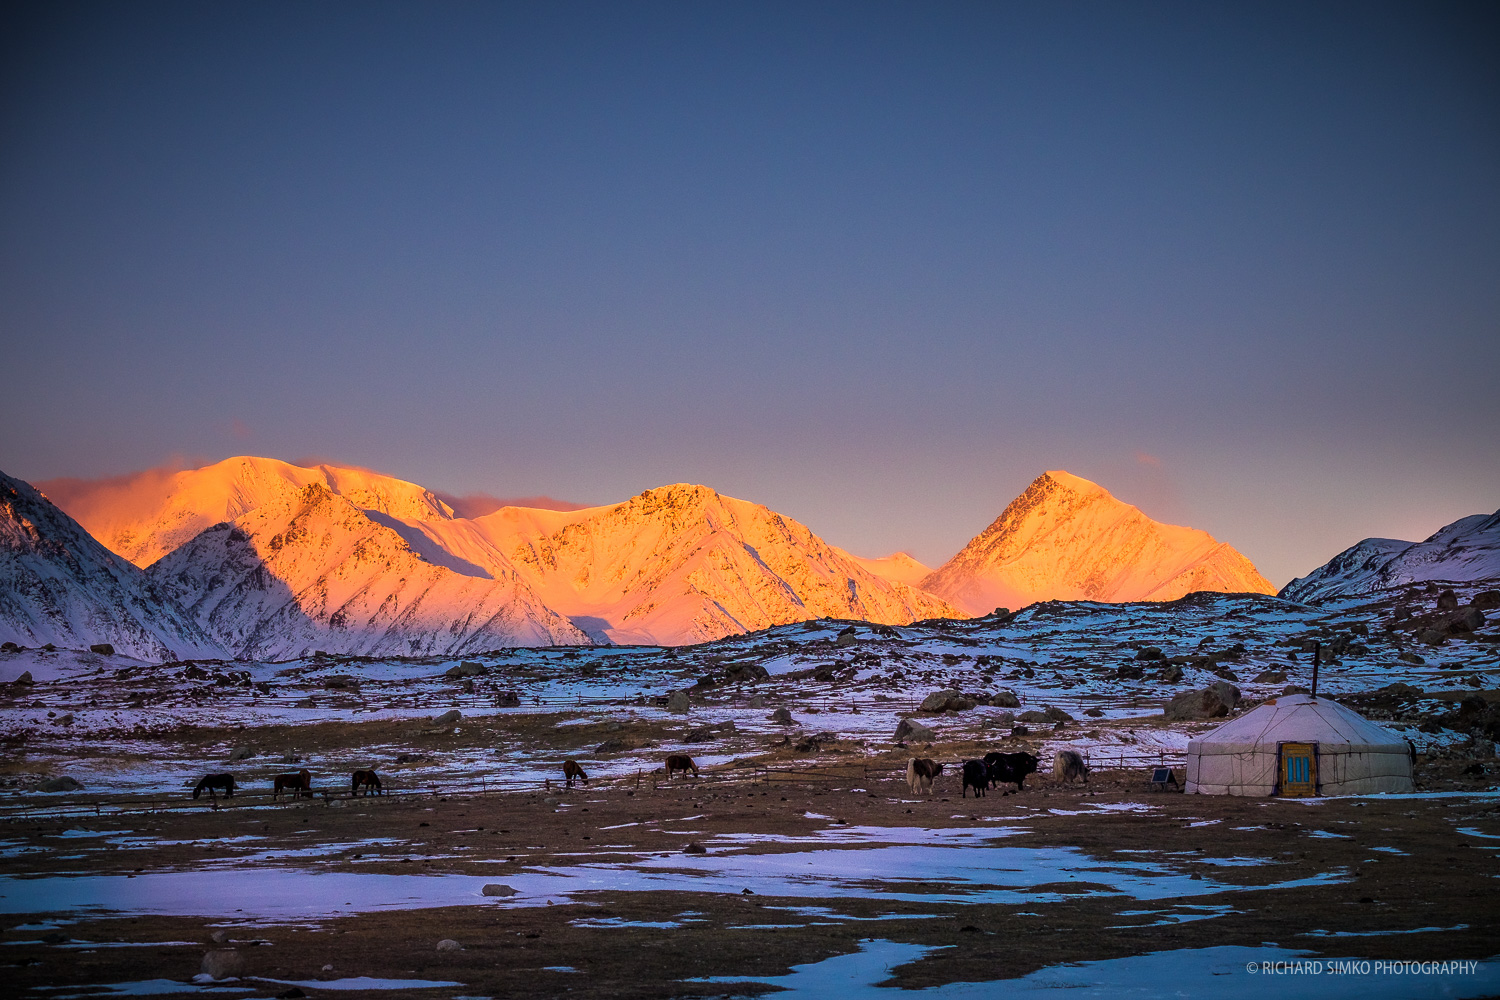 Sunrise at Altai mountains. Chitin peak is the spiky one on the right.